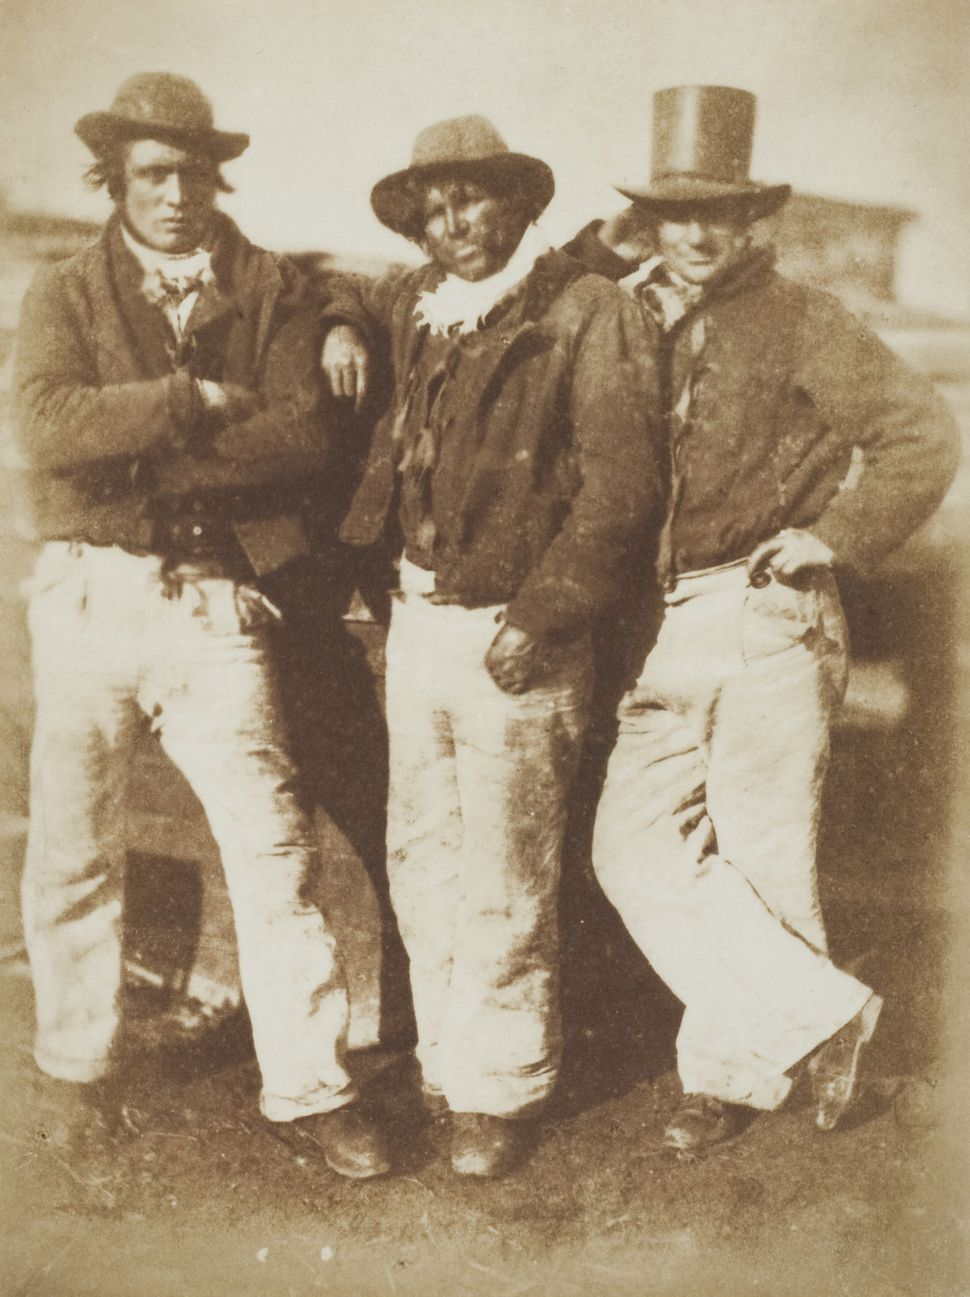 David Hill & Robert Adamson Newhaven Fishermen c.1845 Photograph, salted paper print from a paper negative © Wilson Centre fo